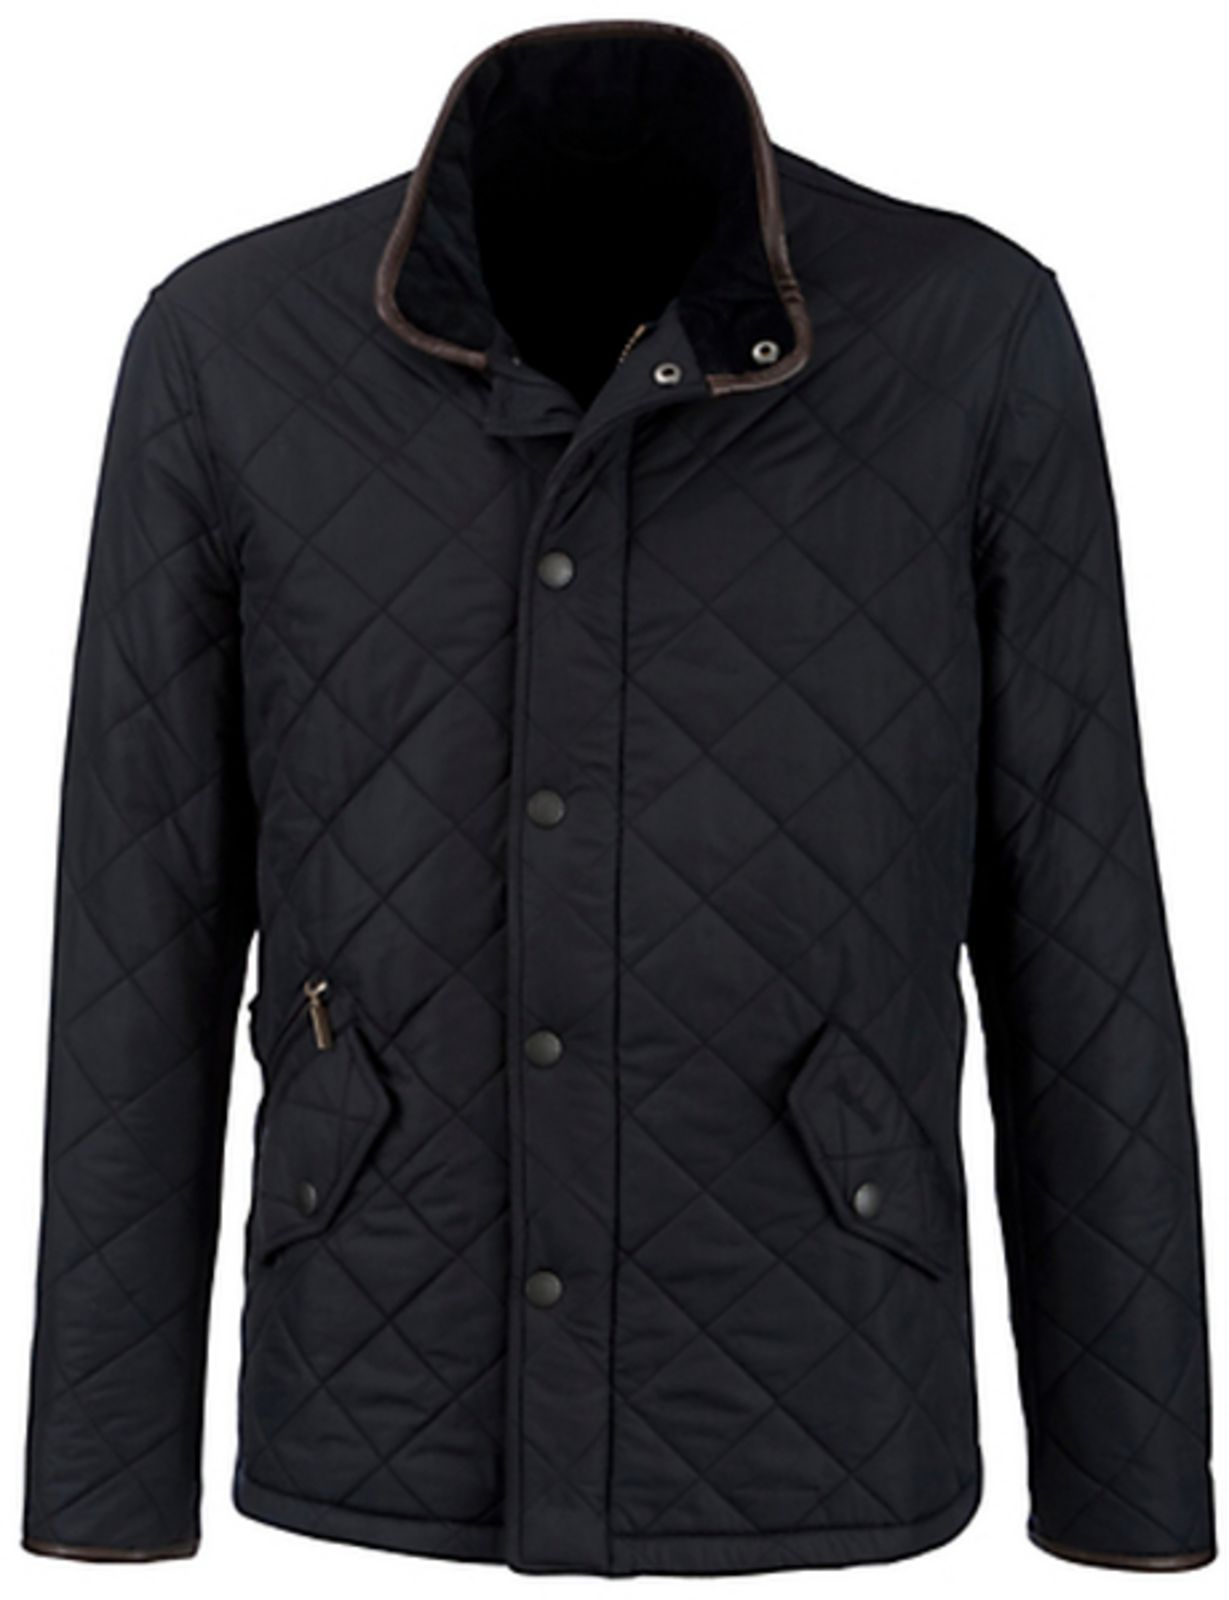 Barbour Powell Jacket Navy   Quilted jacket, Jackets, Barbour